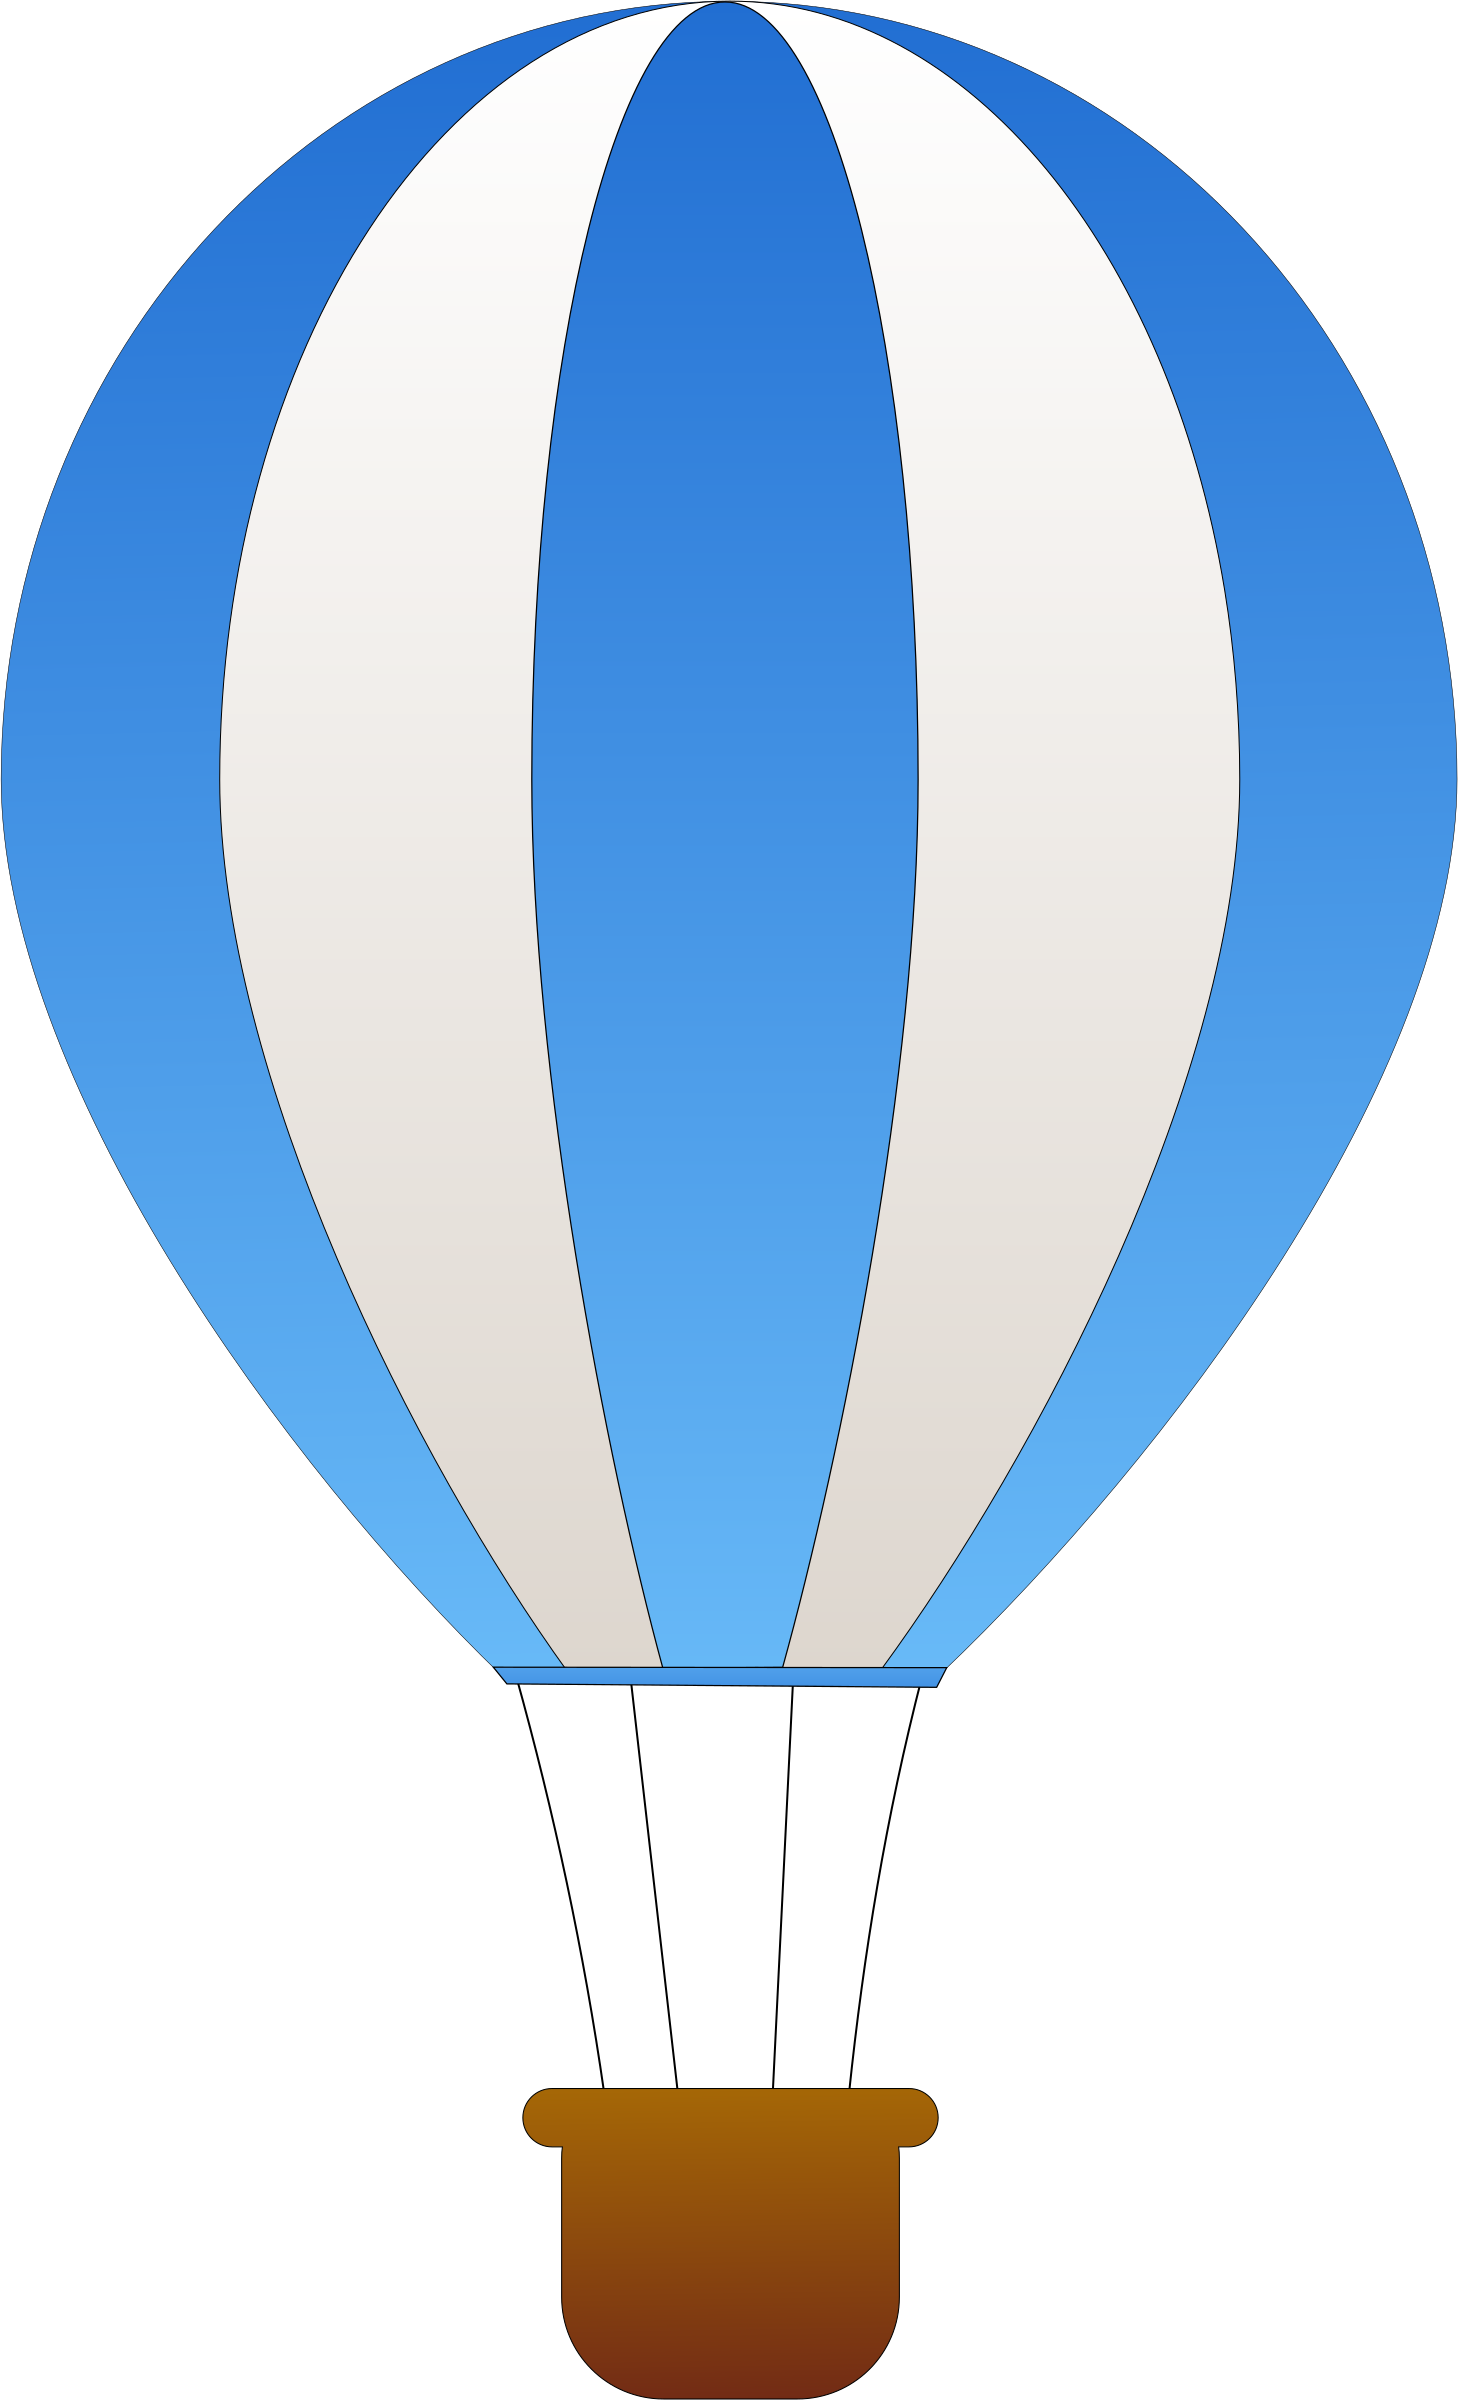 Hot air balloon .png. Vertical striped balloons icons